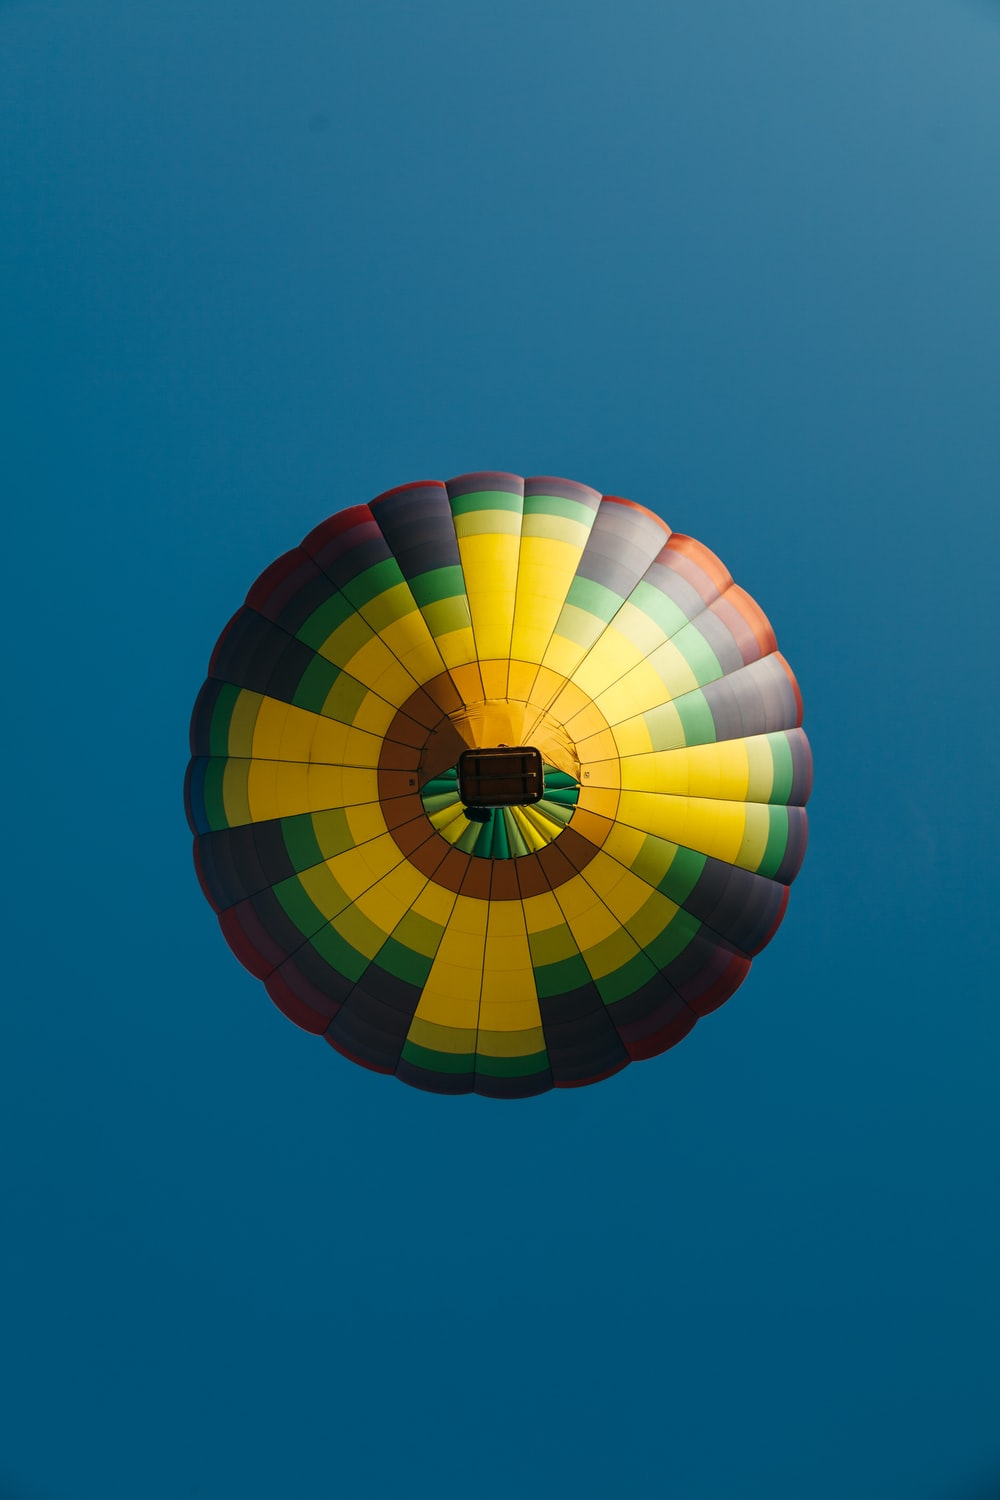 floating yellow, black, and orange hot air balloon